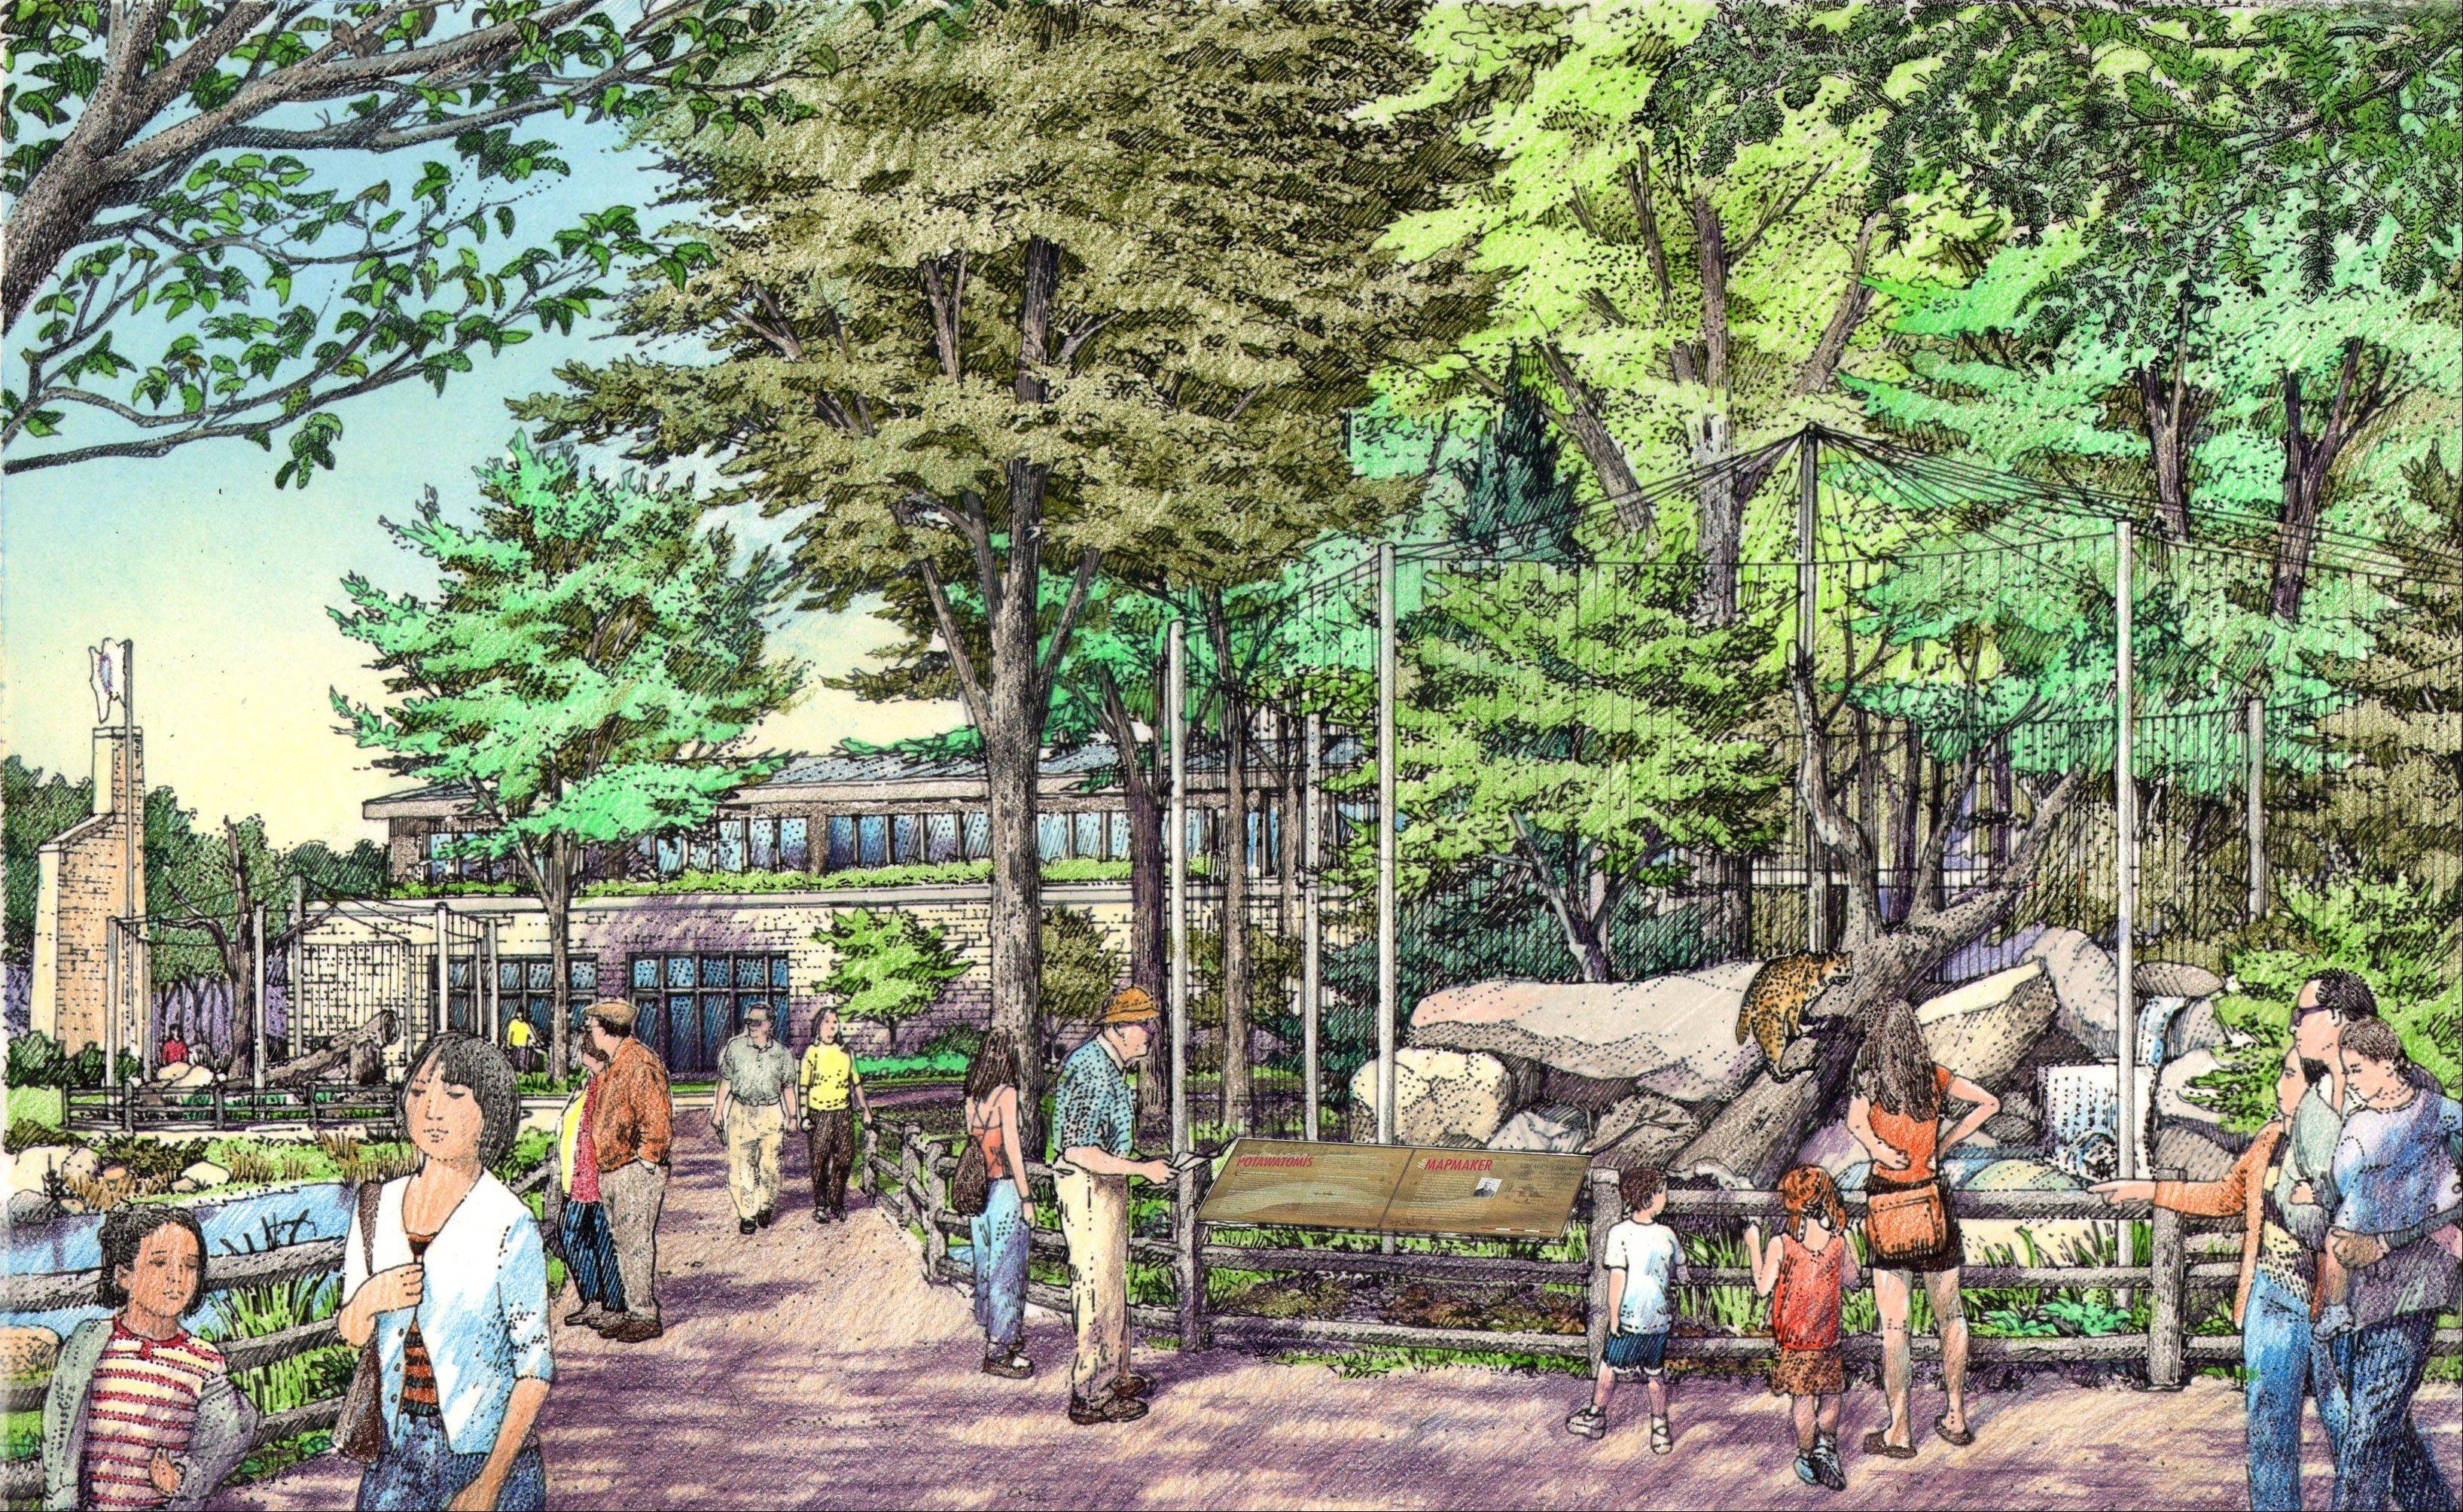 $20 million renovation starting at Willowbrook Wildlife Center